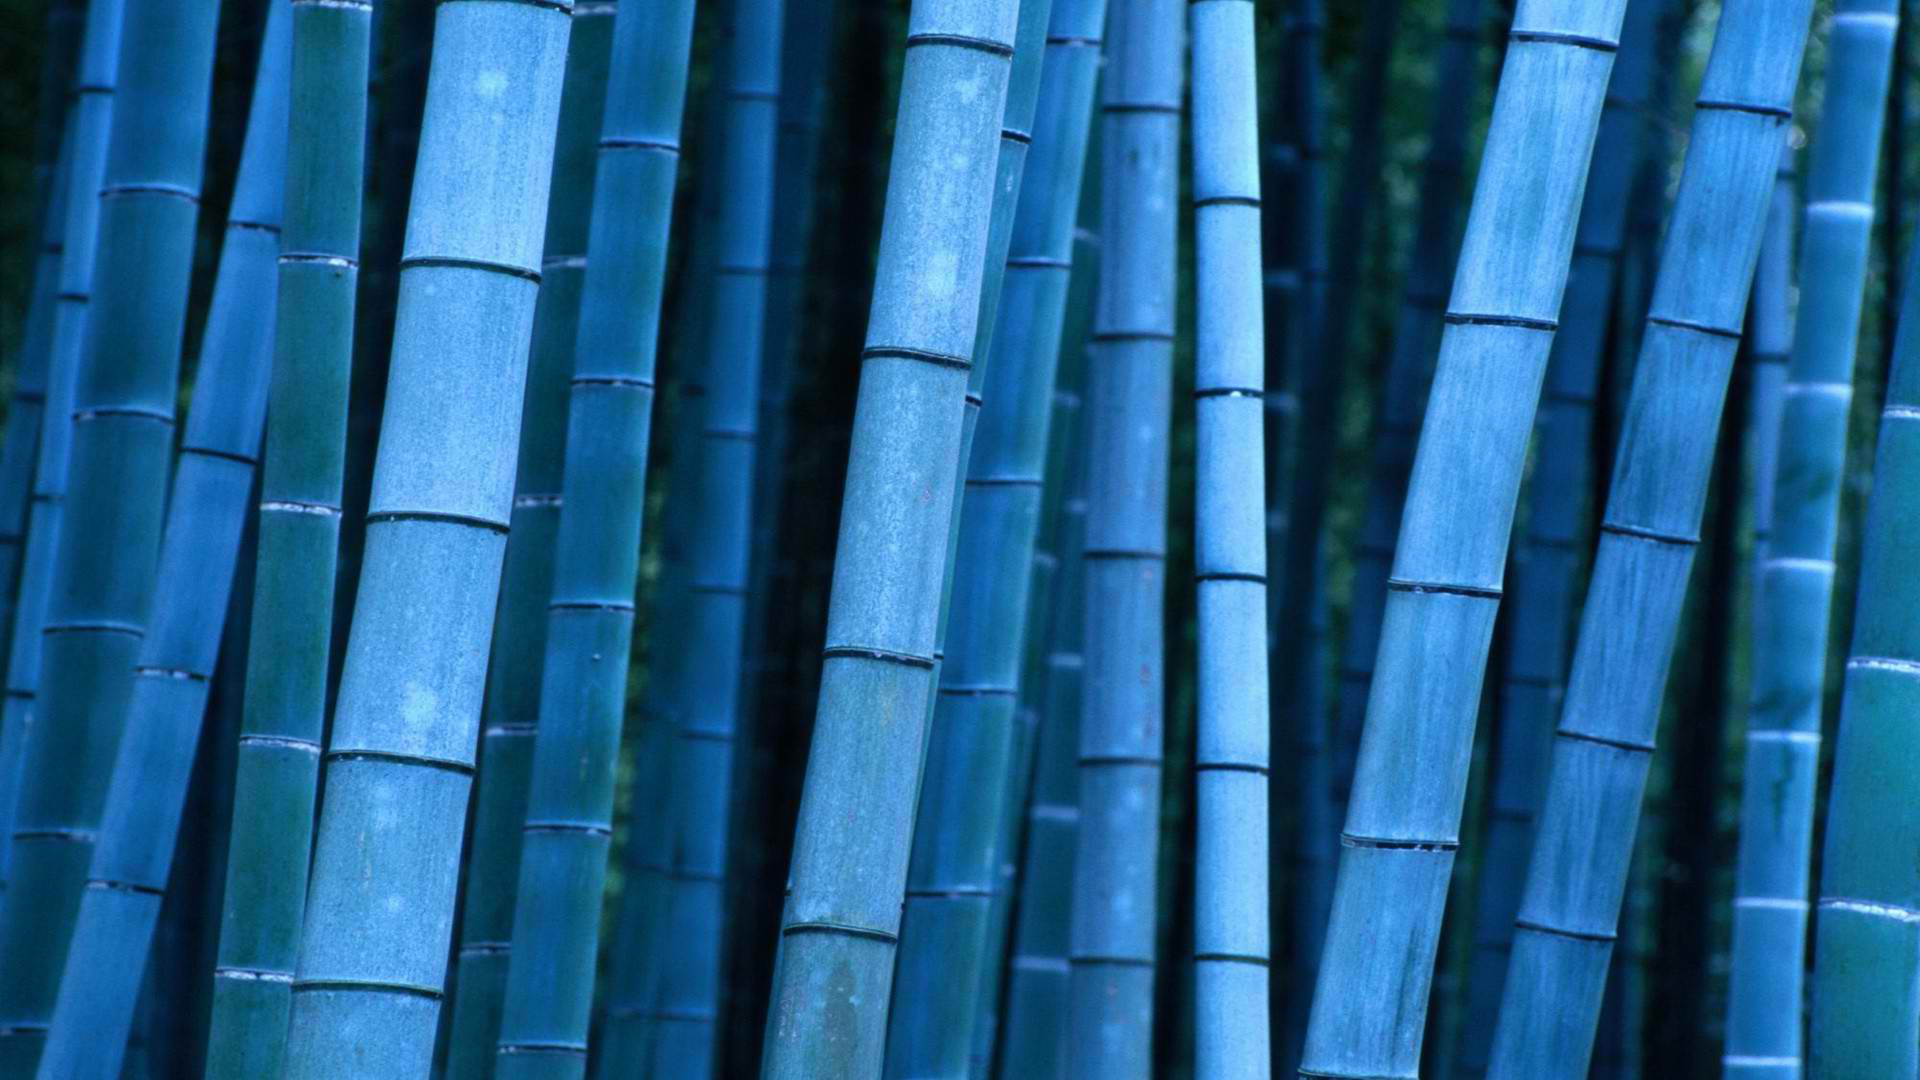 bamboo wallpaper A10